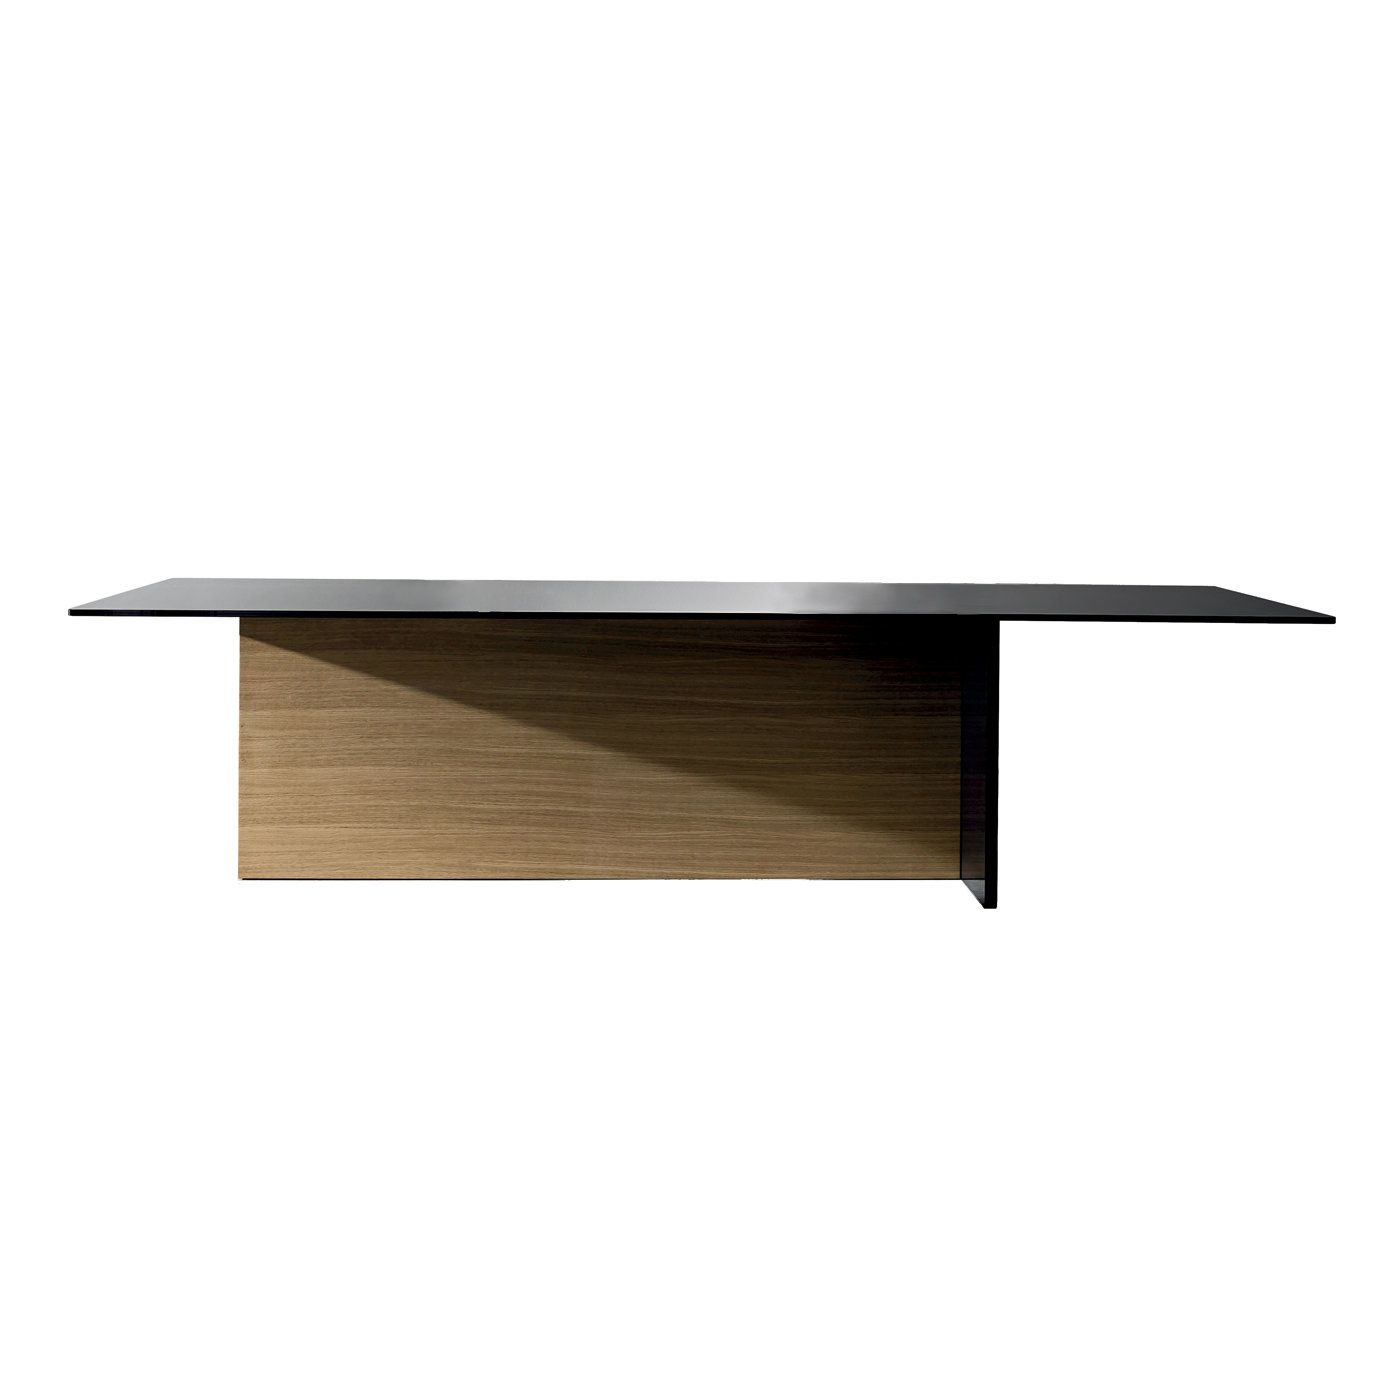 This elegant table in oak wood supports a top in laminated tinted glass. On one of the short sides, the same sleek glass tinted in black decorates the base.